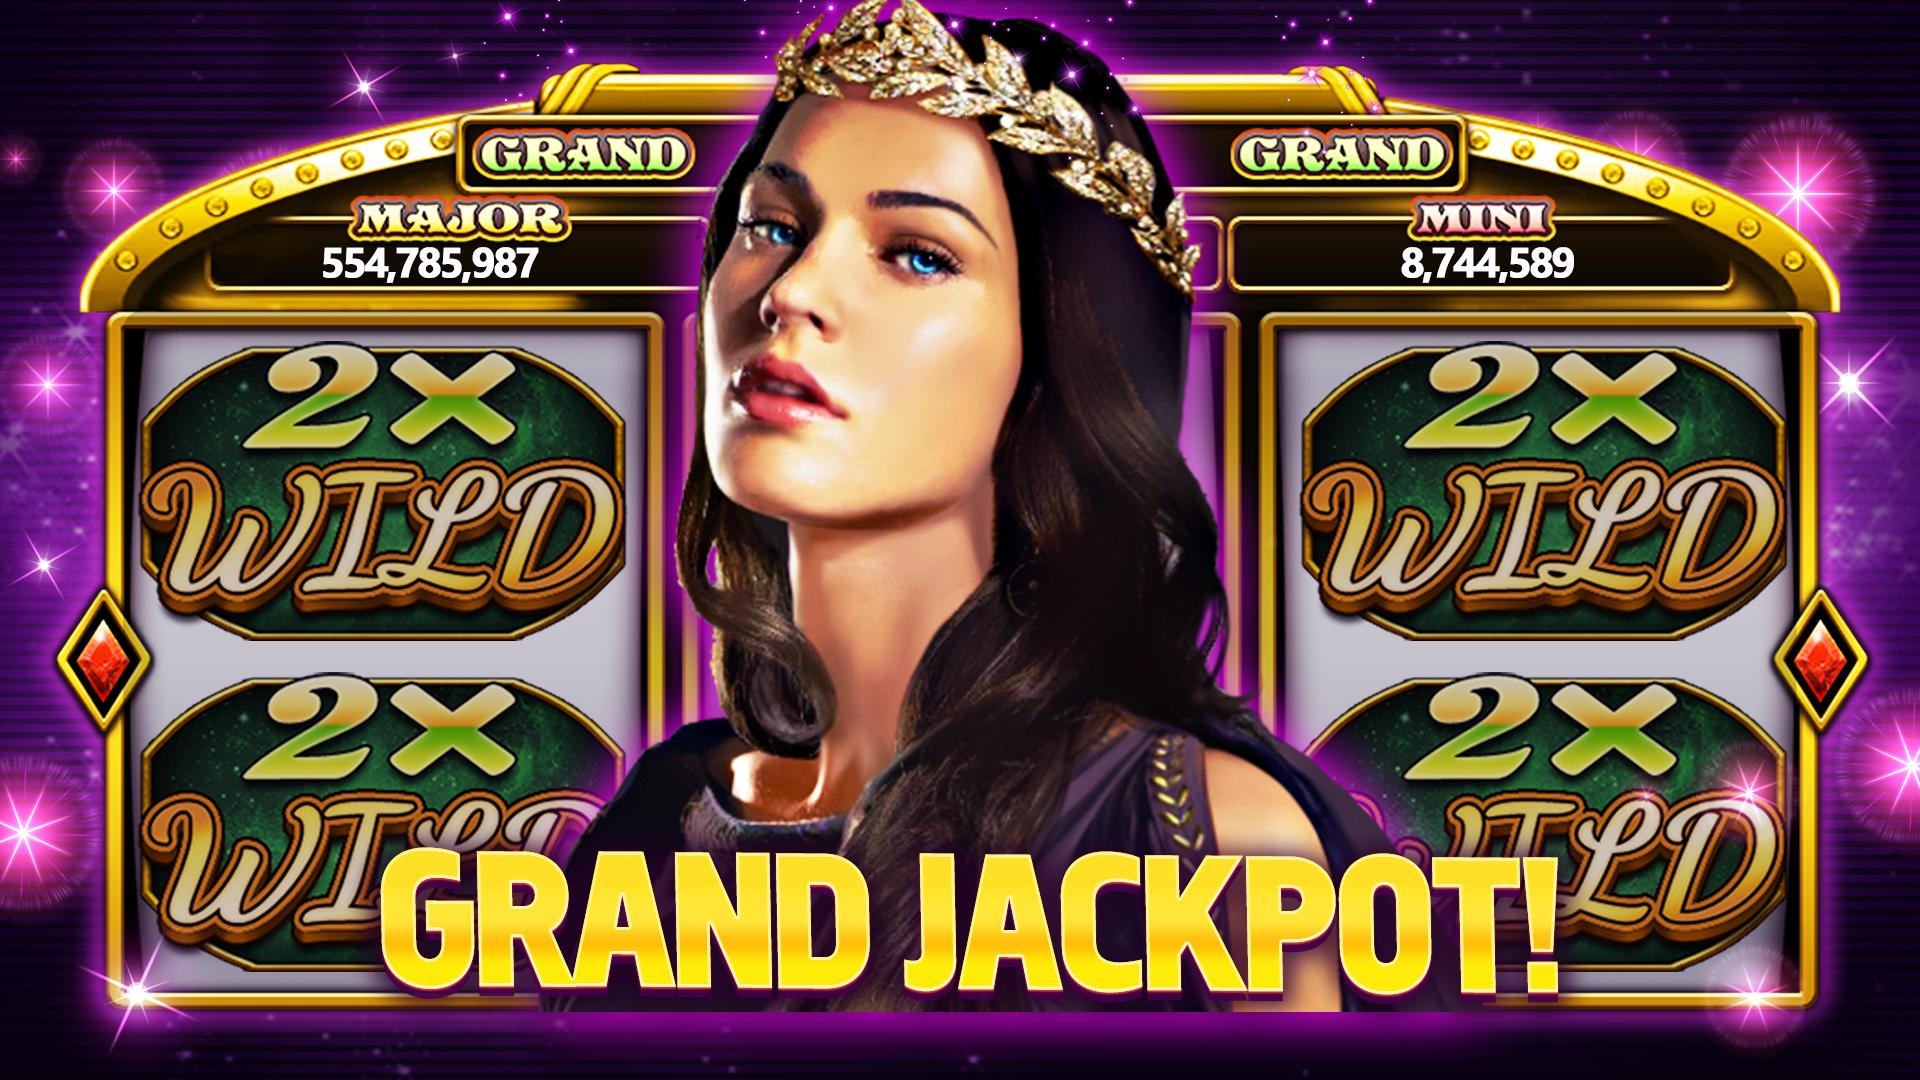 Grand Jackpot Slots Pop Vegas Casino Free Games 1.0.44 Screenshot 13